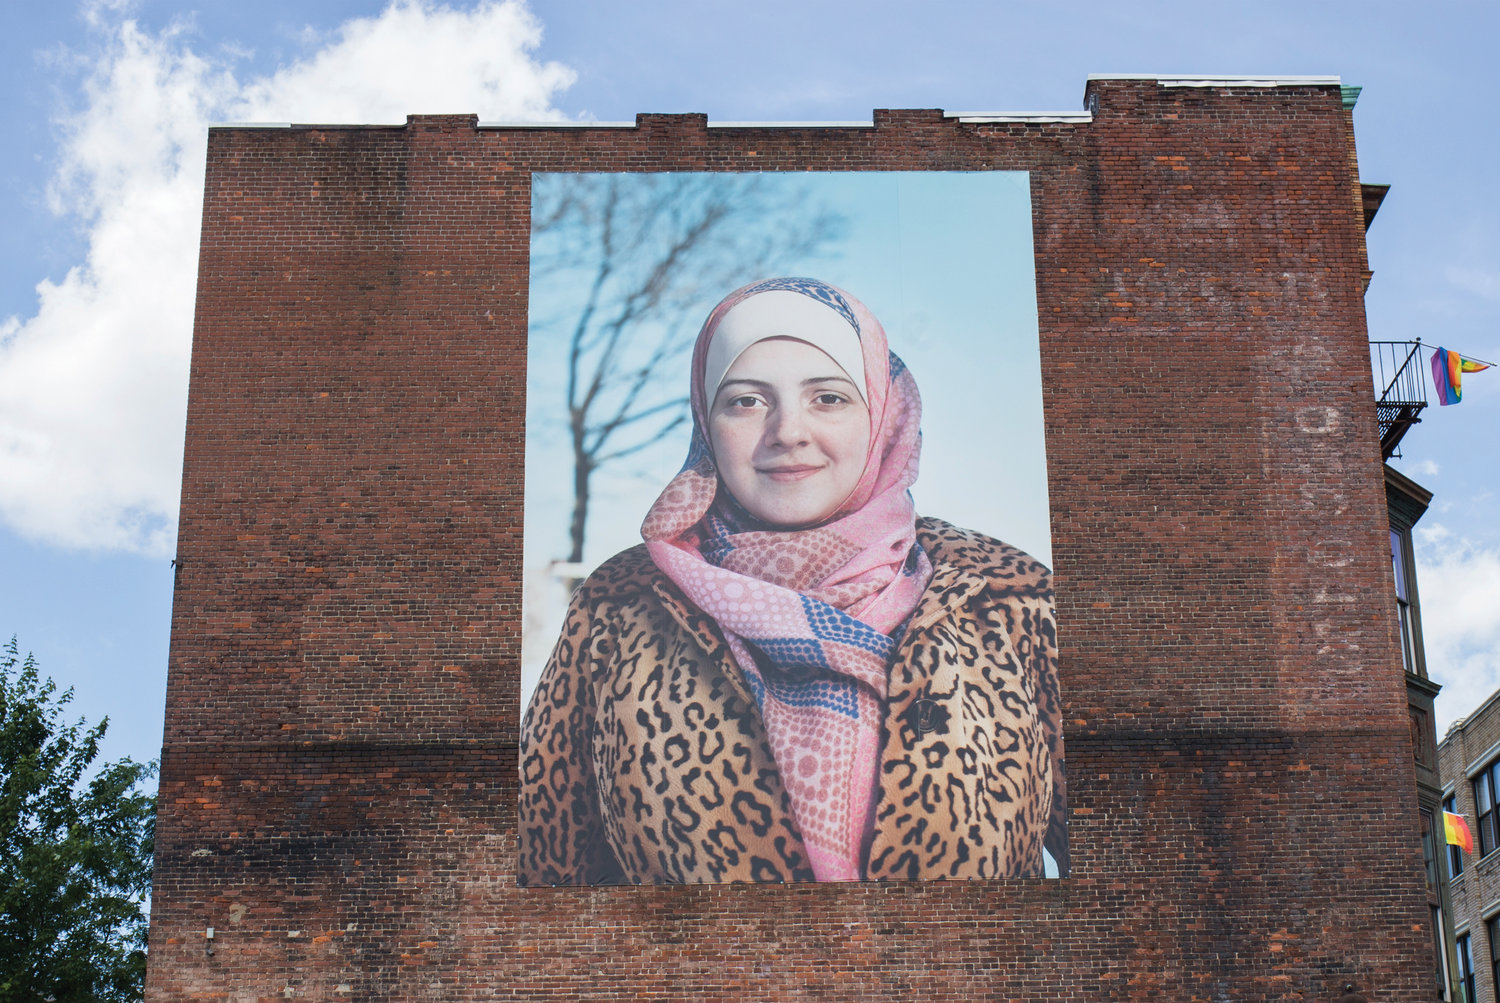 Initially, Bidur had reservations about putting her picture on this wall, fearing for the safety of her children and her family